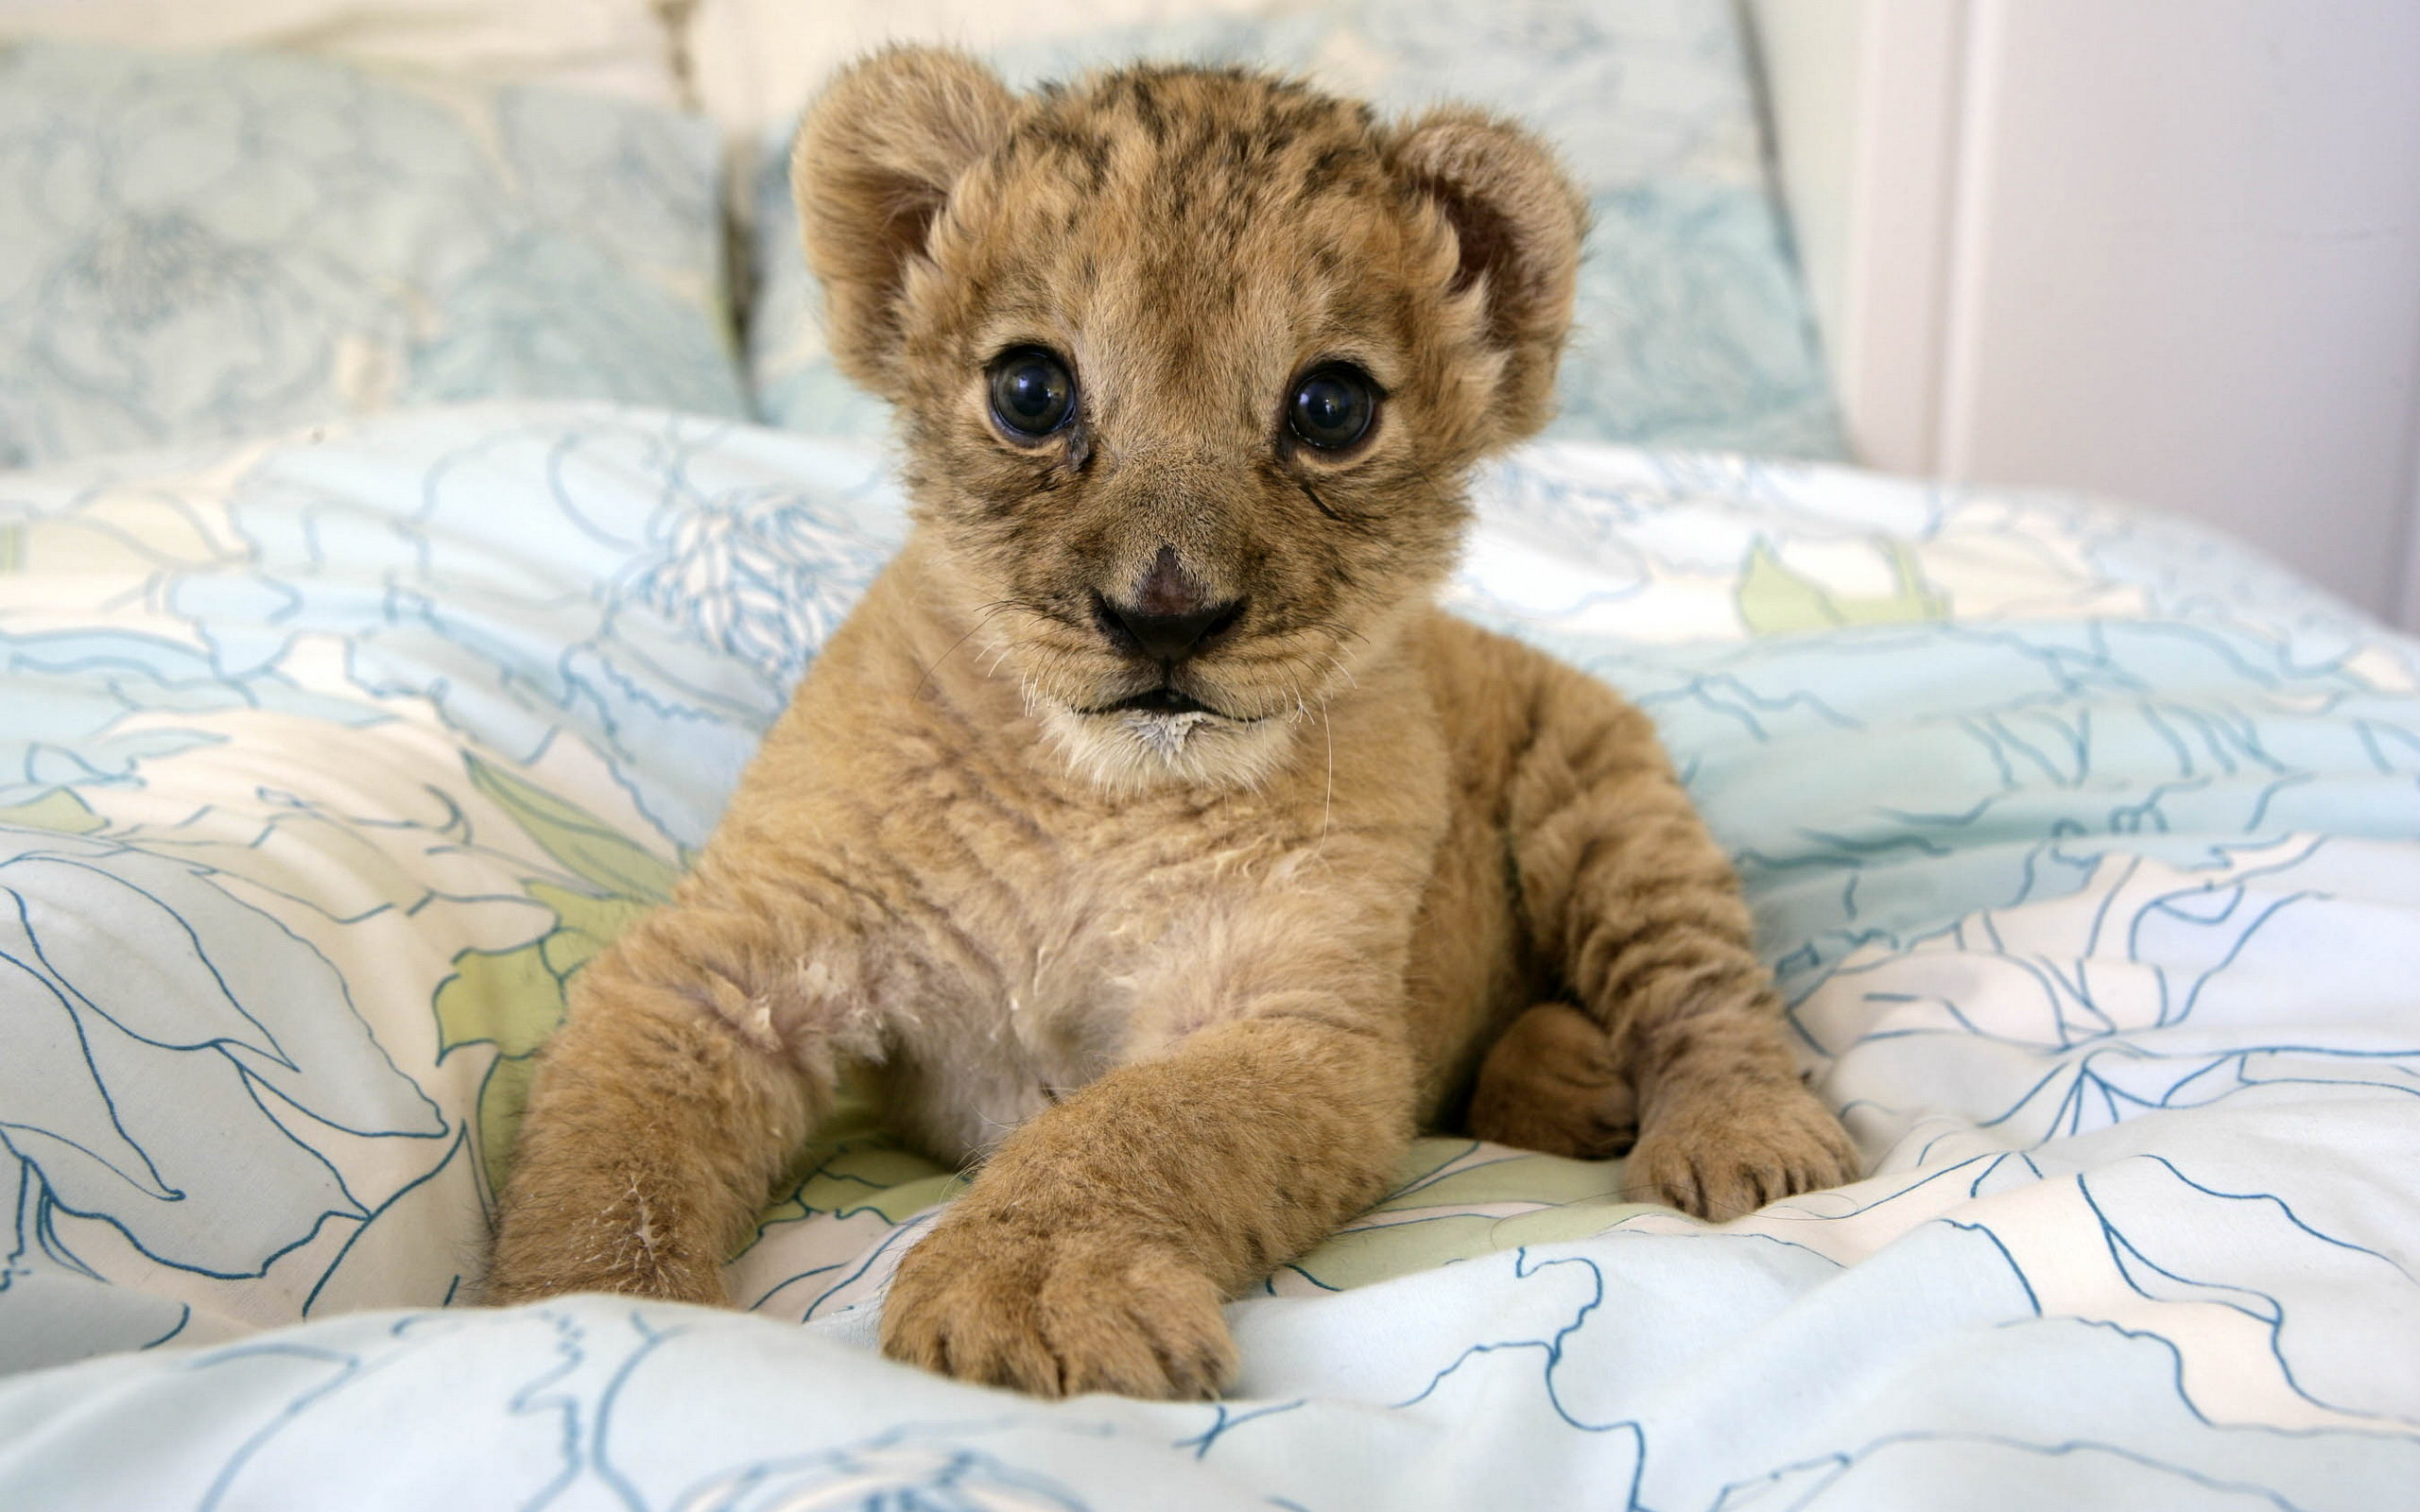 Cute Baby Lion Cub wallpaper   ForWallpapercom 2560x1600